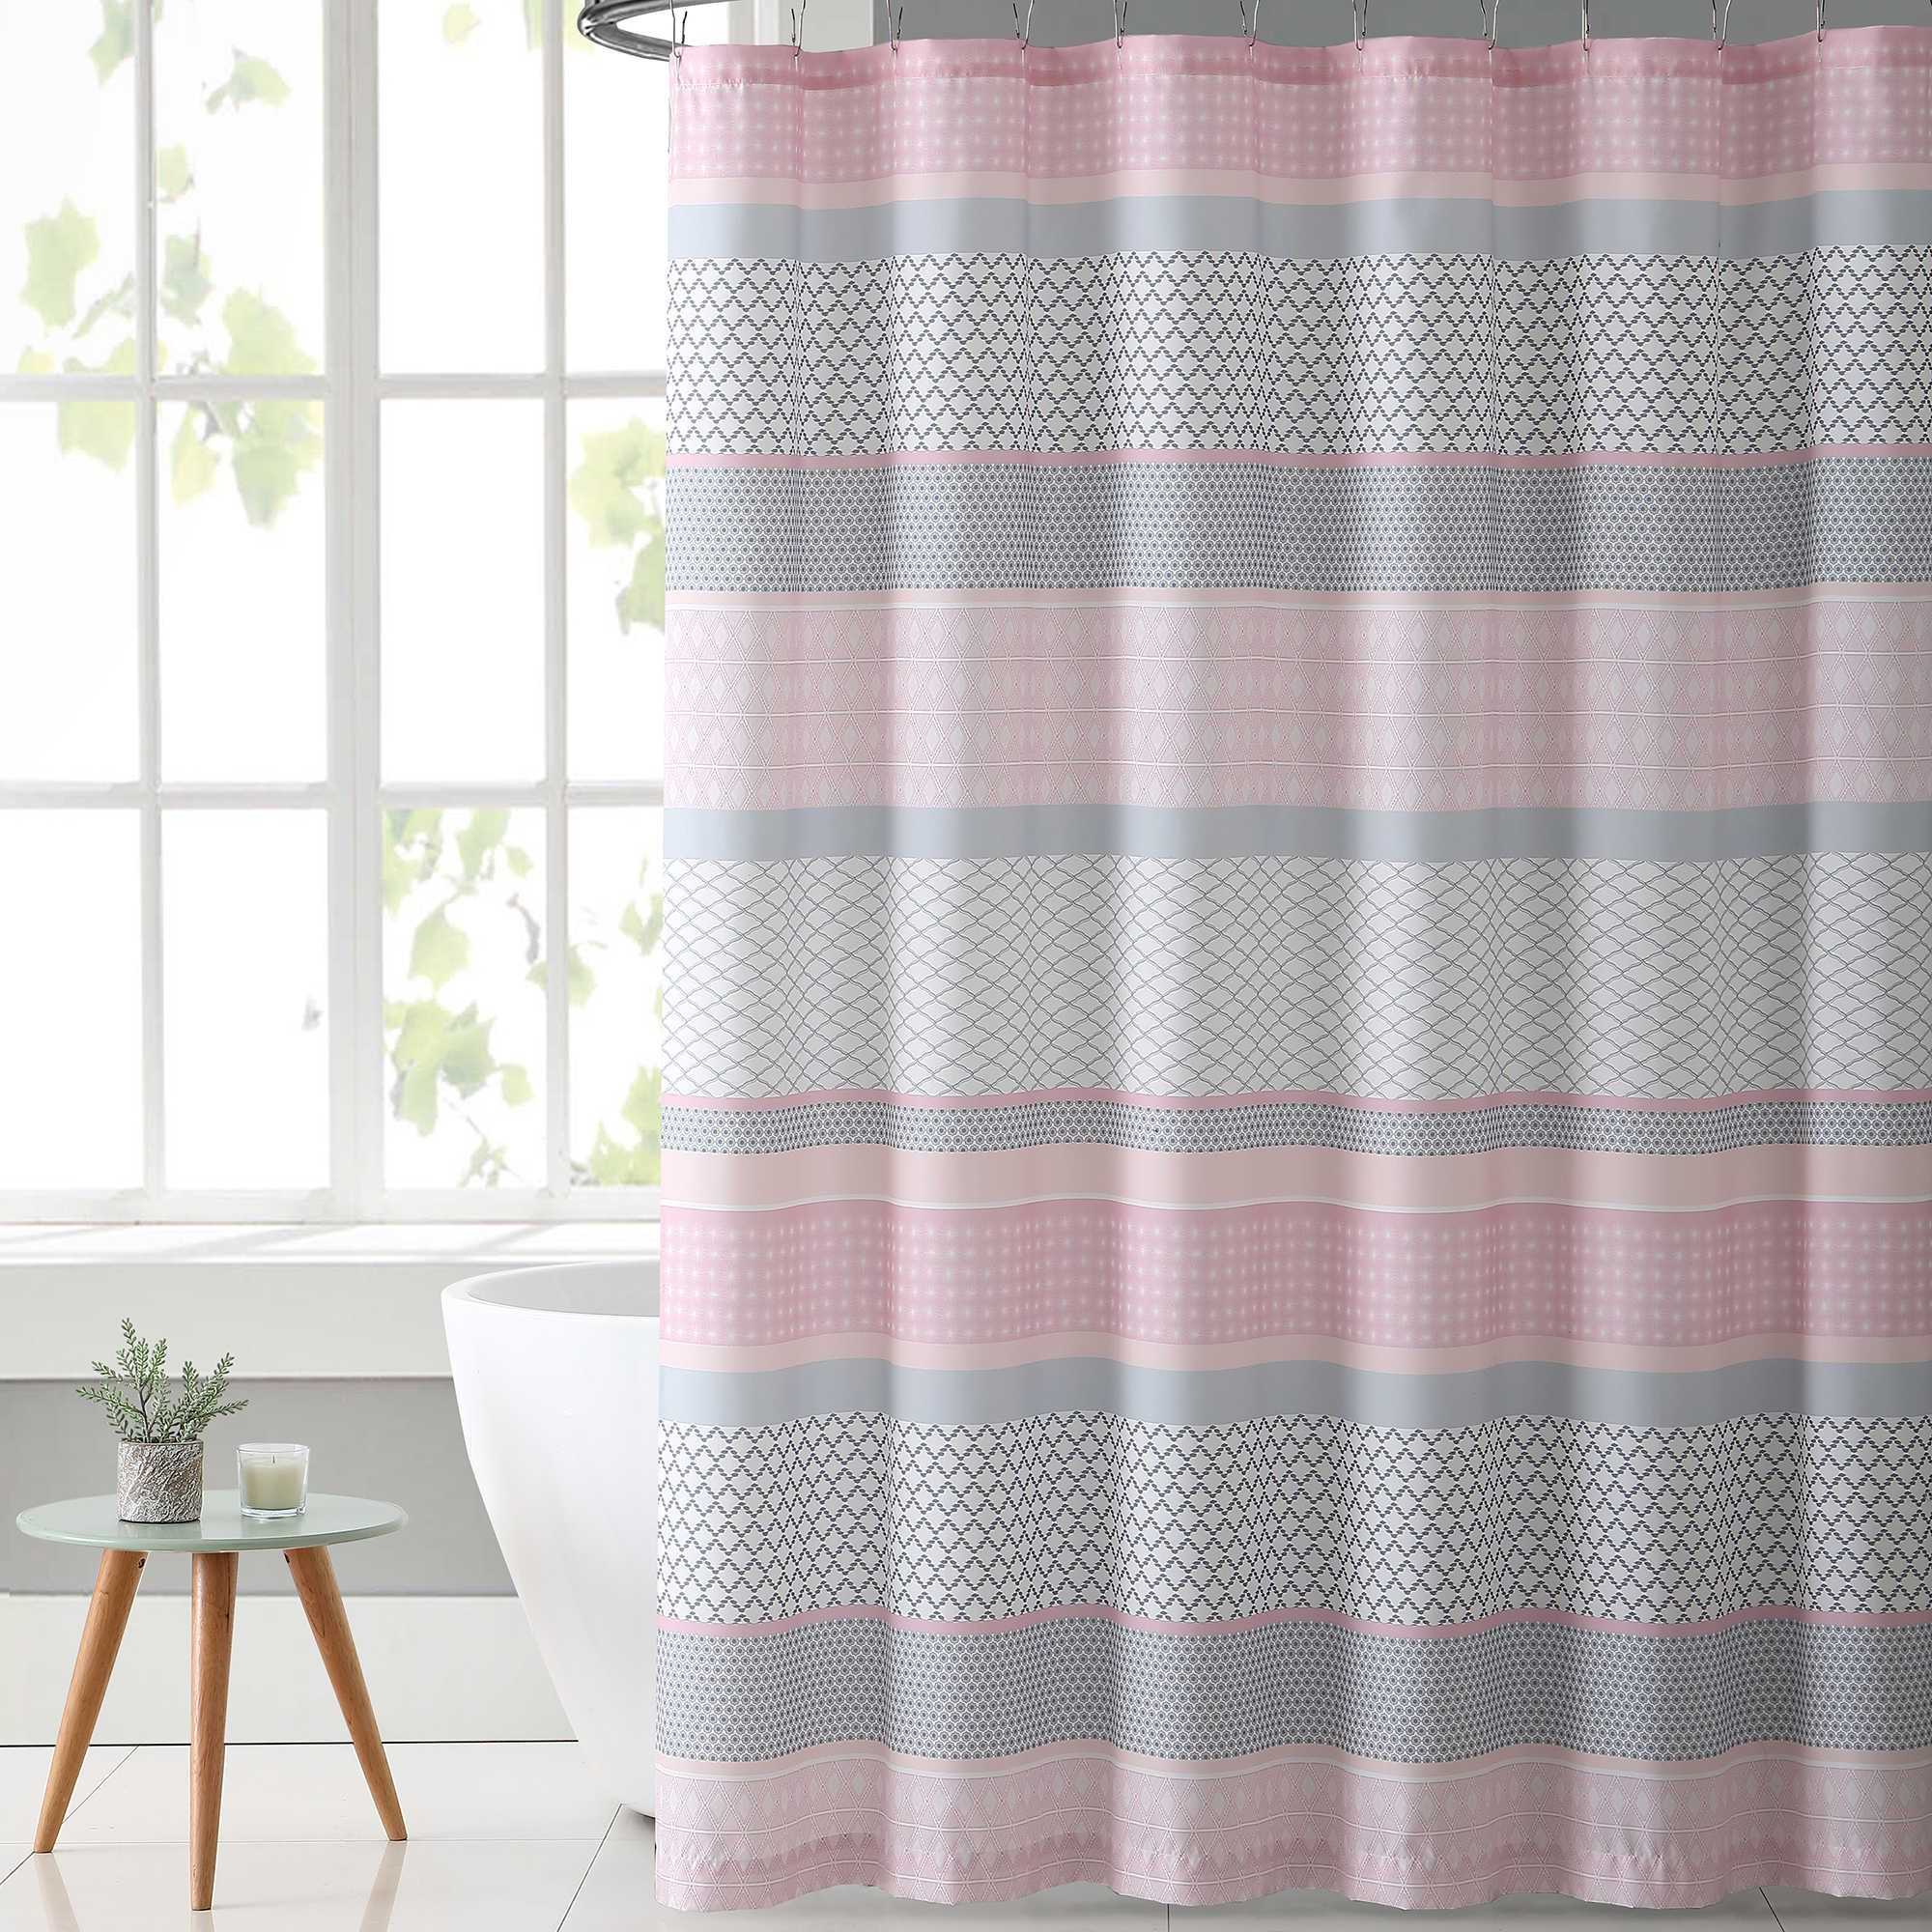 Vcny Home Stockholm Shower Curtain In Pink Grey Pink Shower